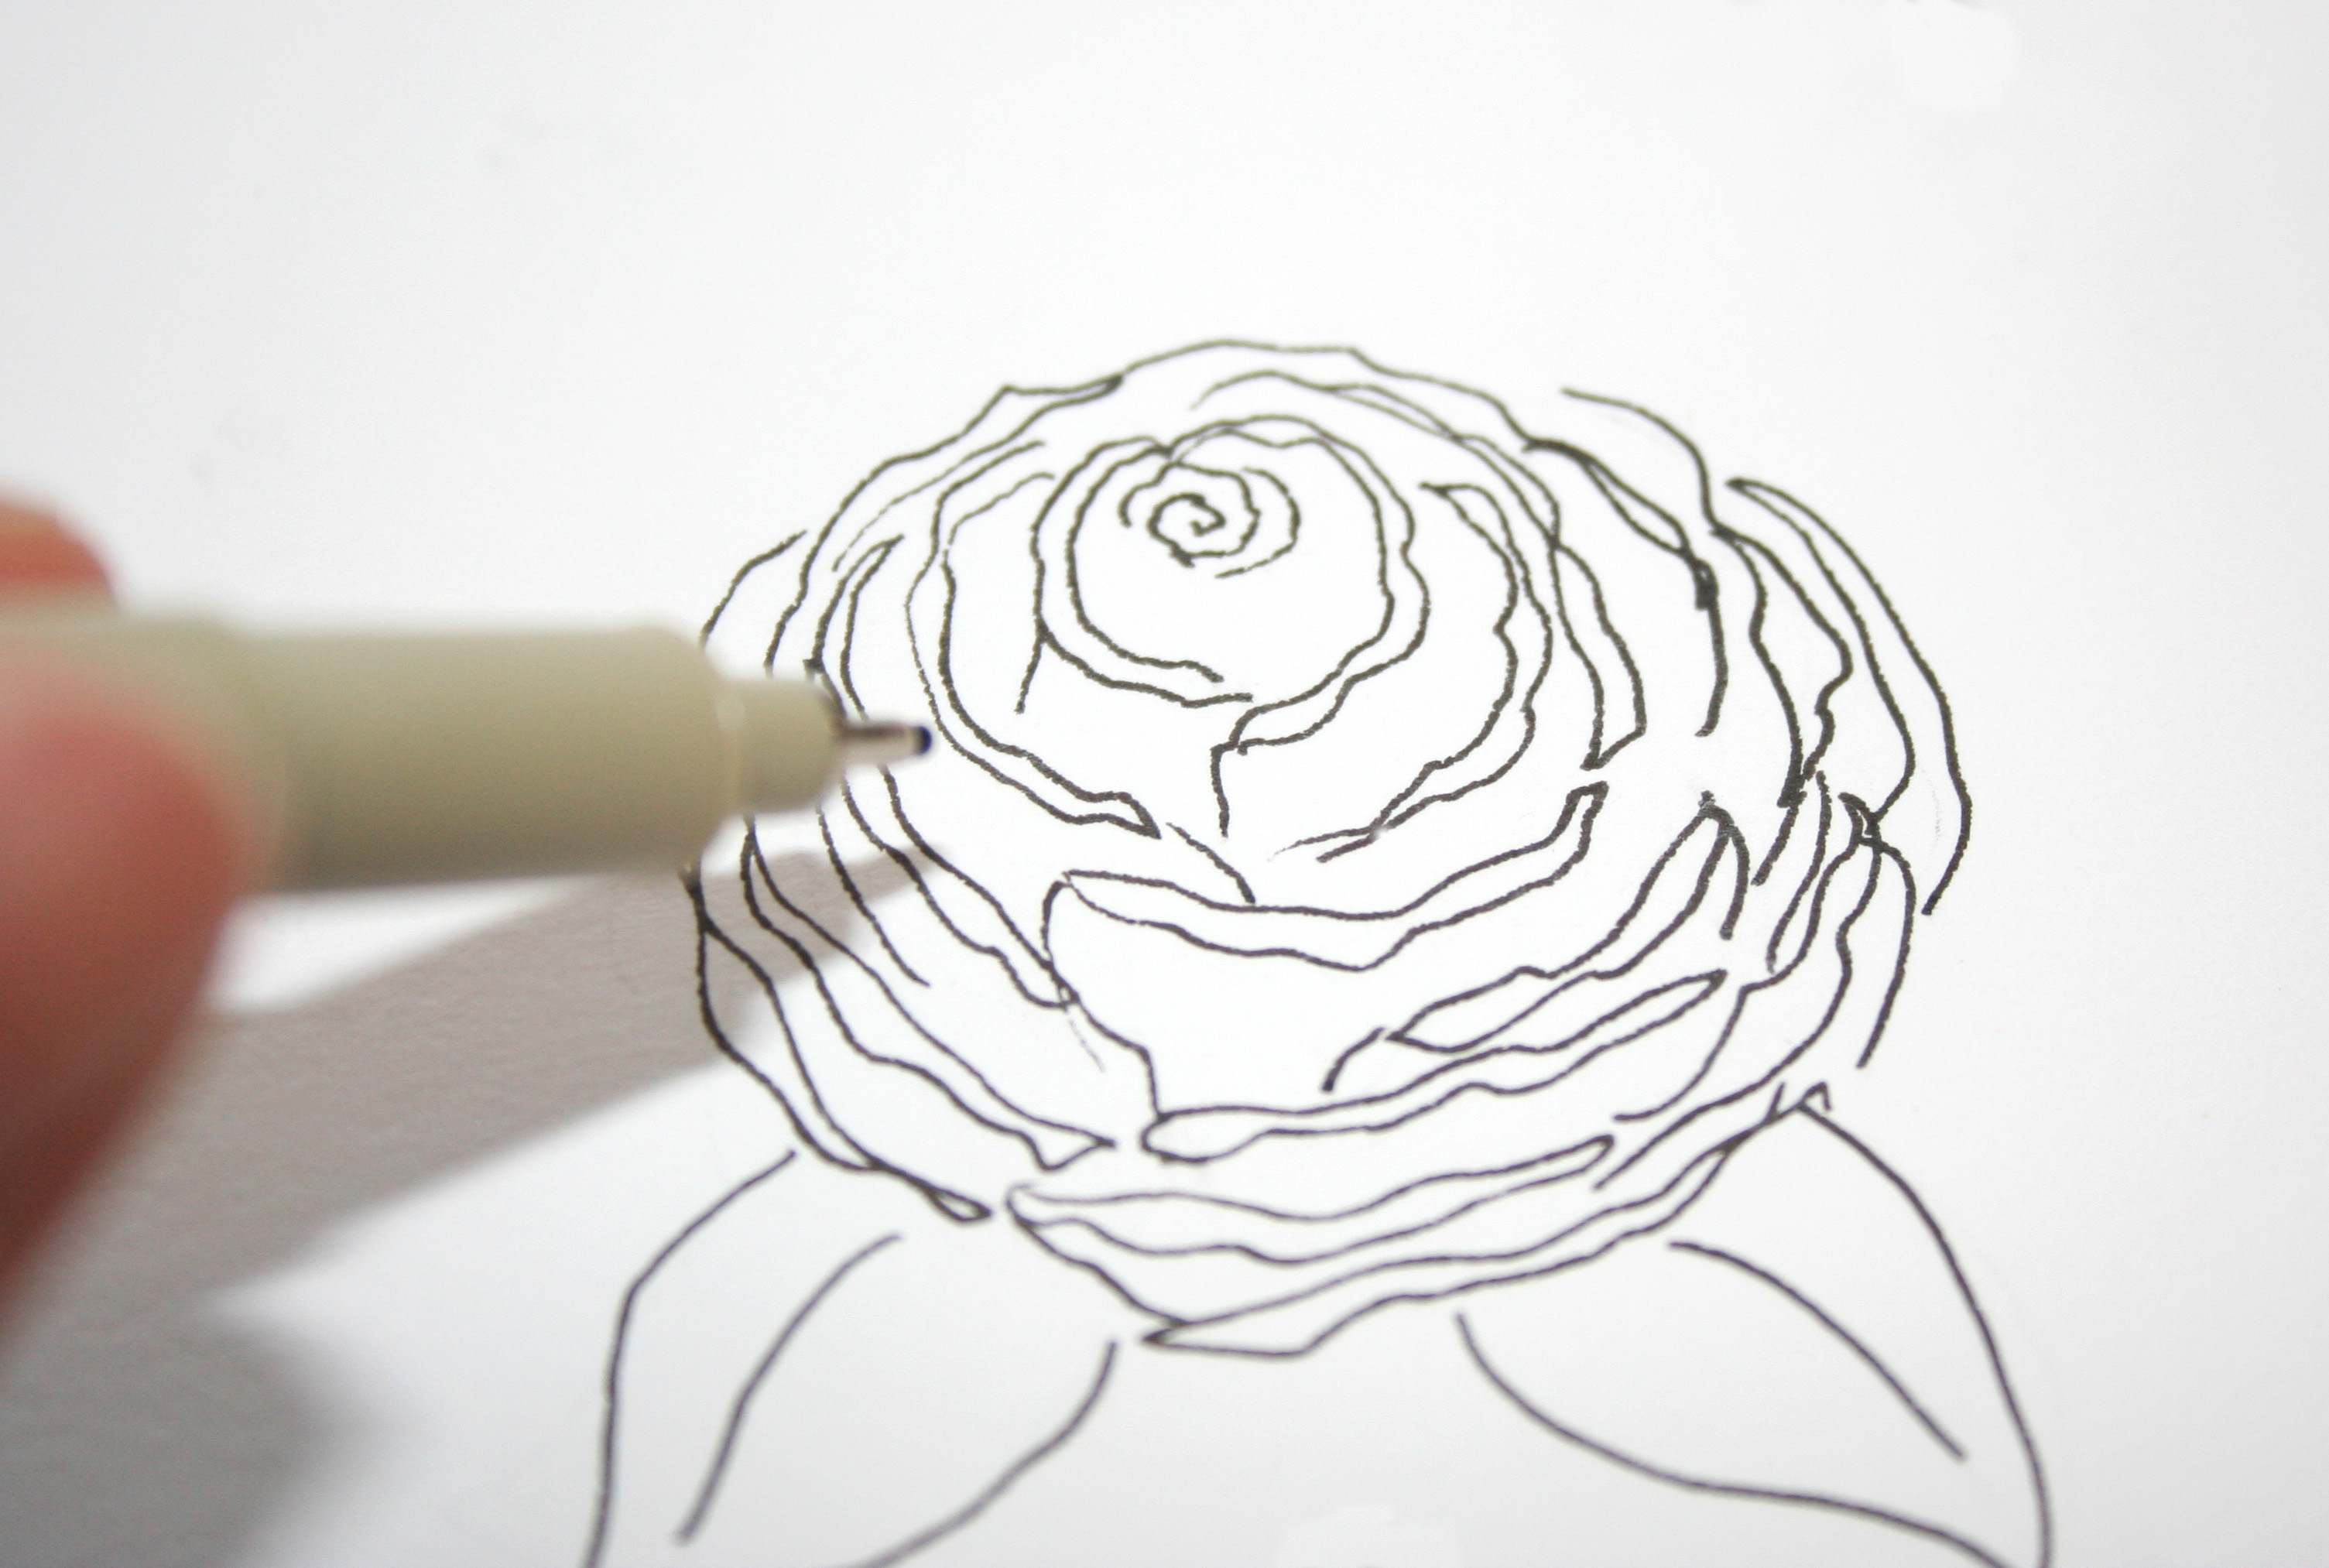 Pencils 5 simple steps 3009x2026 gallery how to draw a open rose